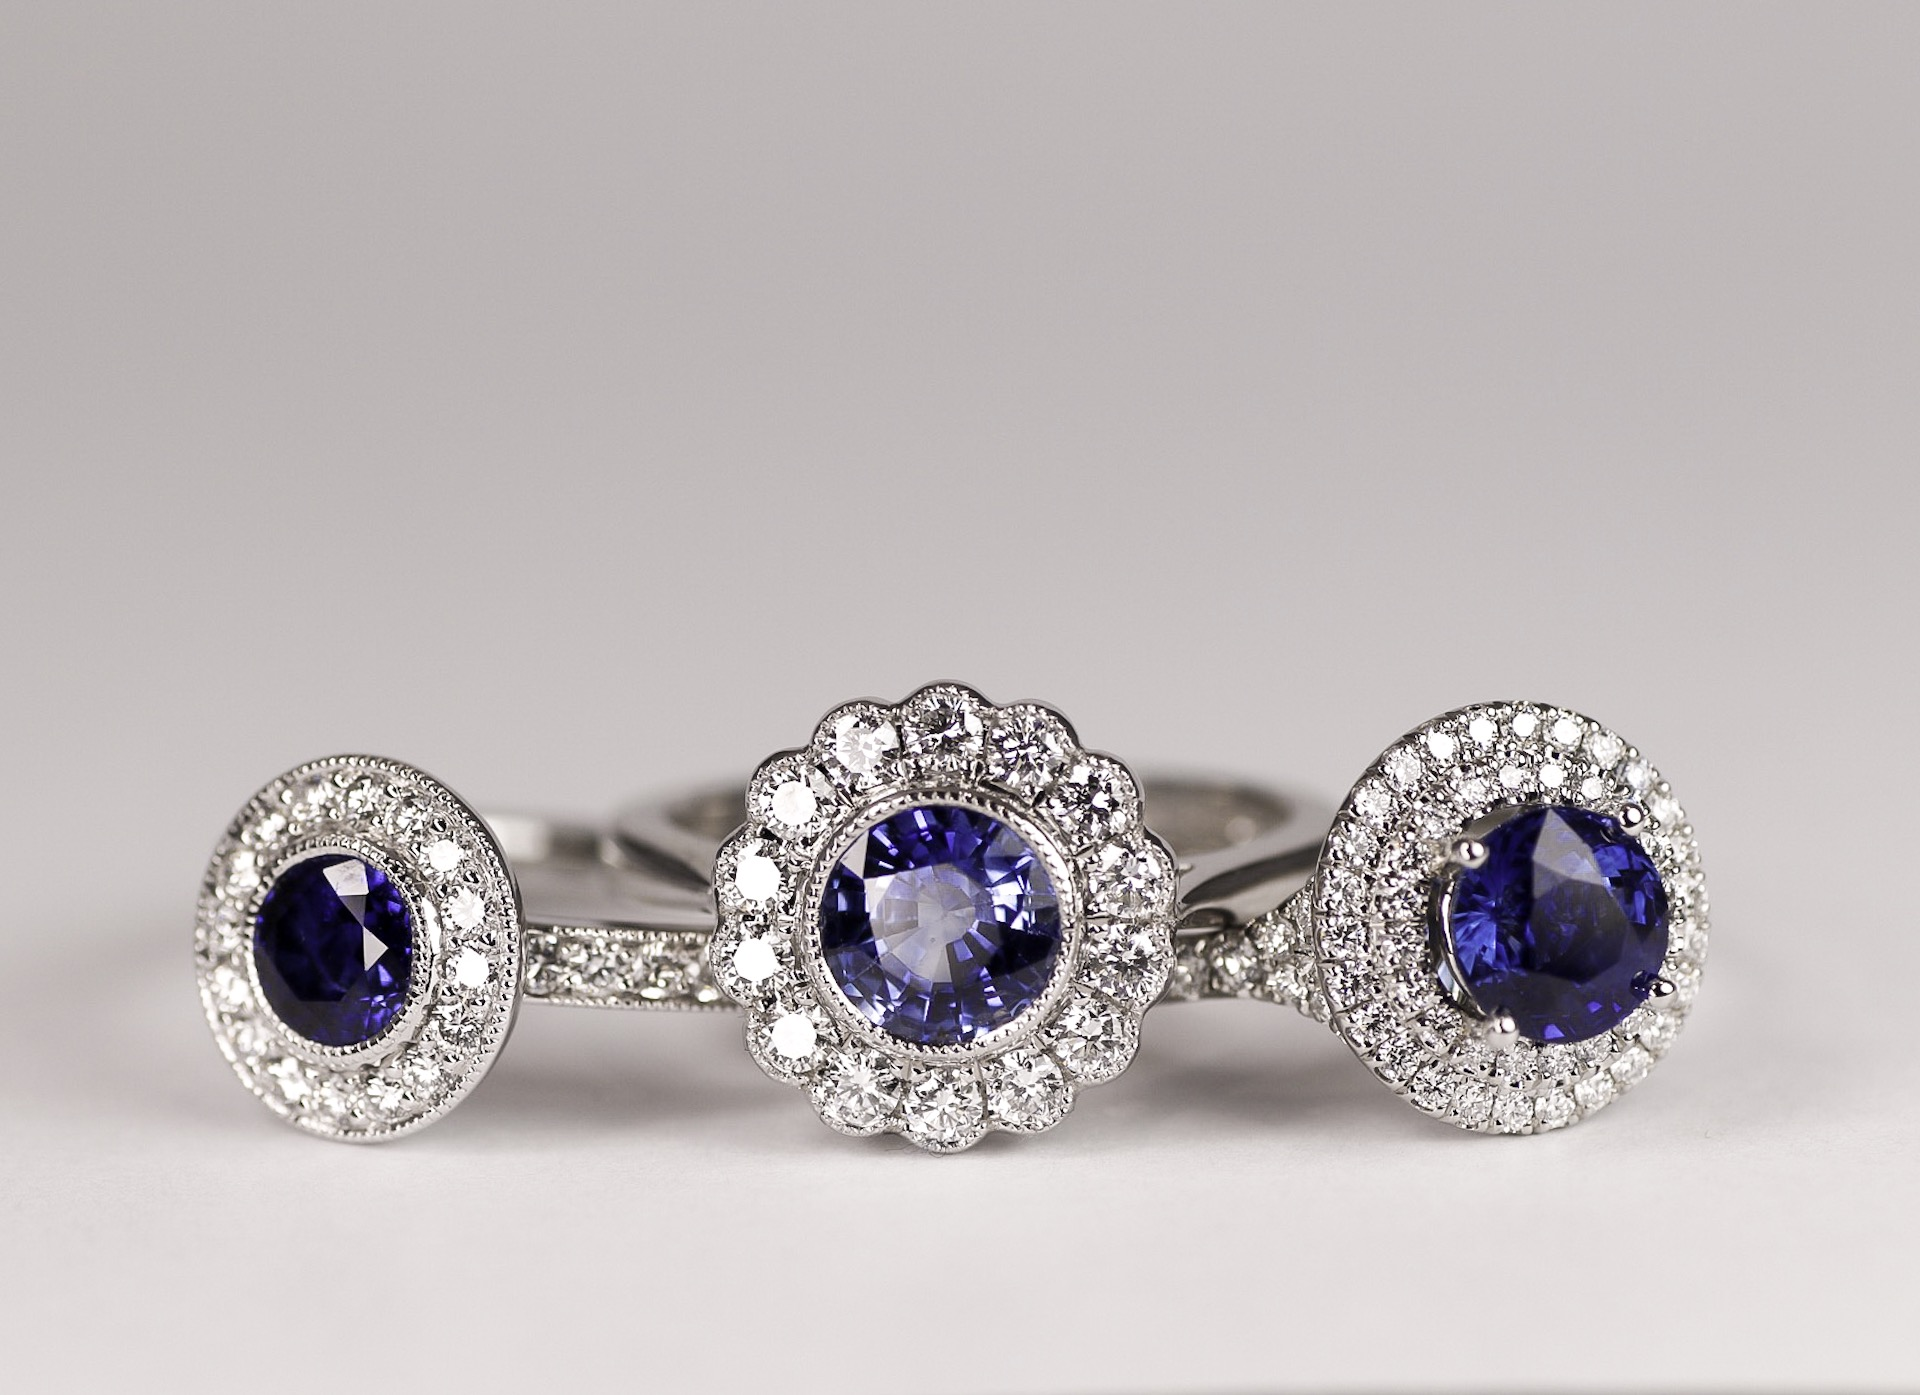 18ct white gold and platinum mounted diamond and sapphire cluster rings. All three made in Chichester, England.